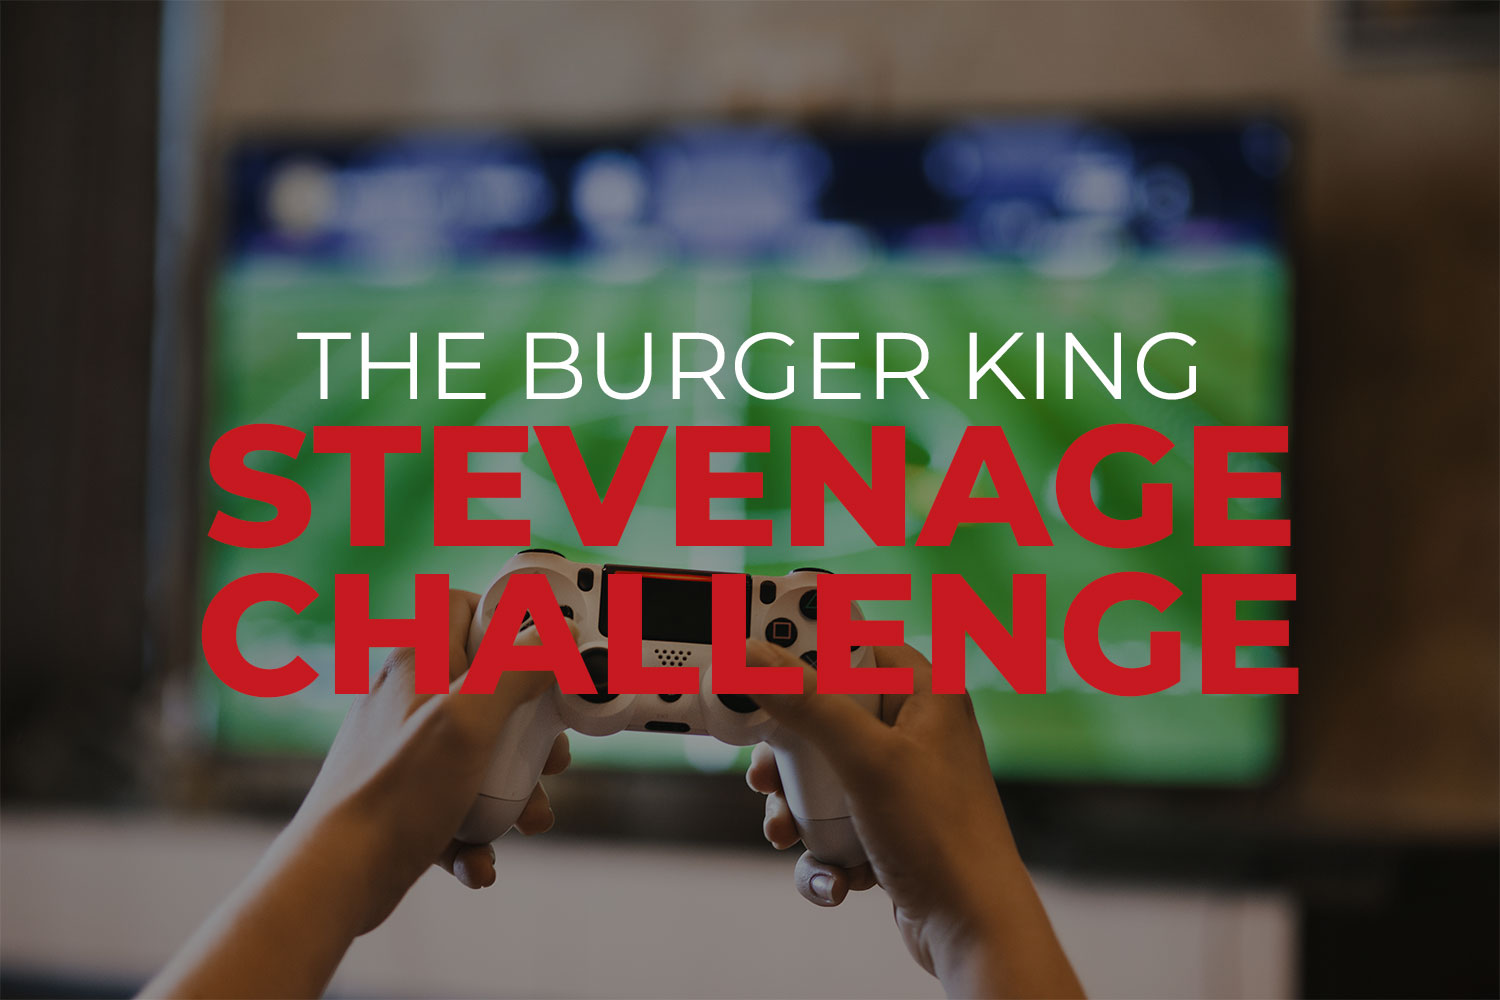 The genius marketing campaign of how Burger King put Stevenage on the map | Momentum Social UK, Cloud Pocket 365